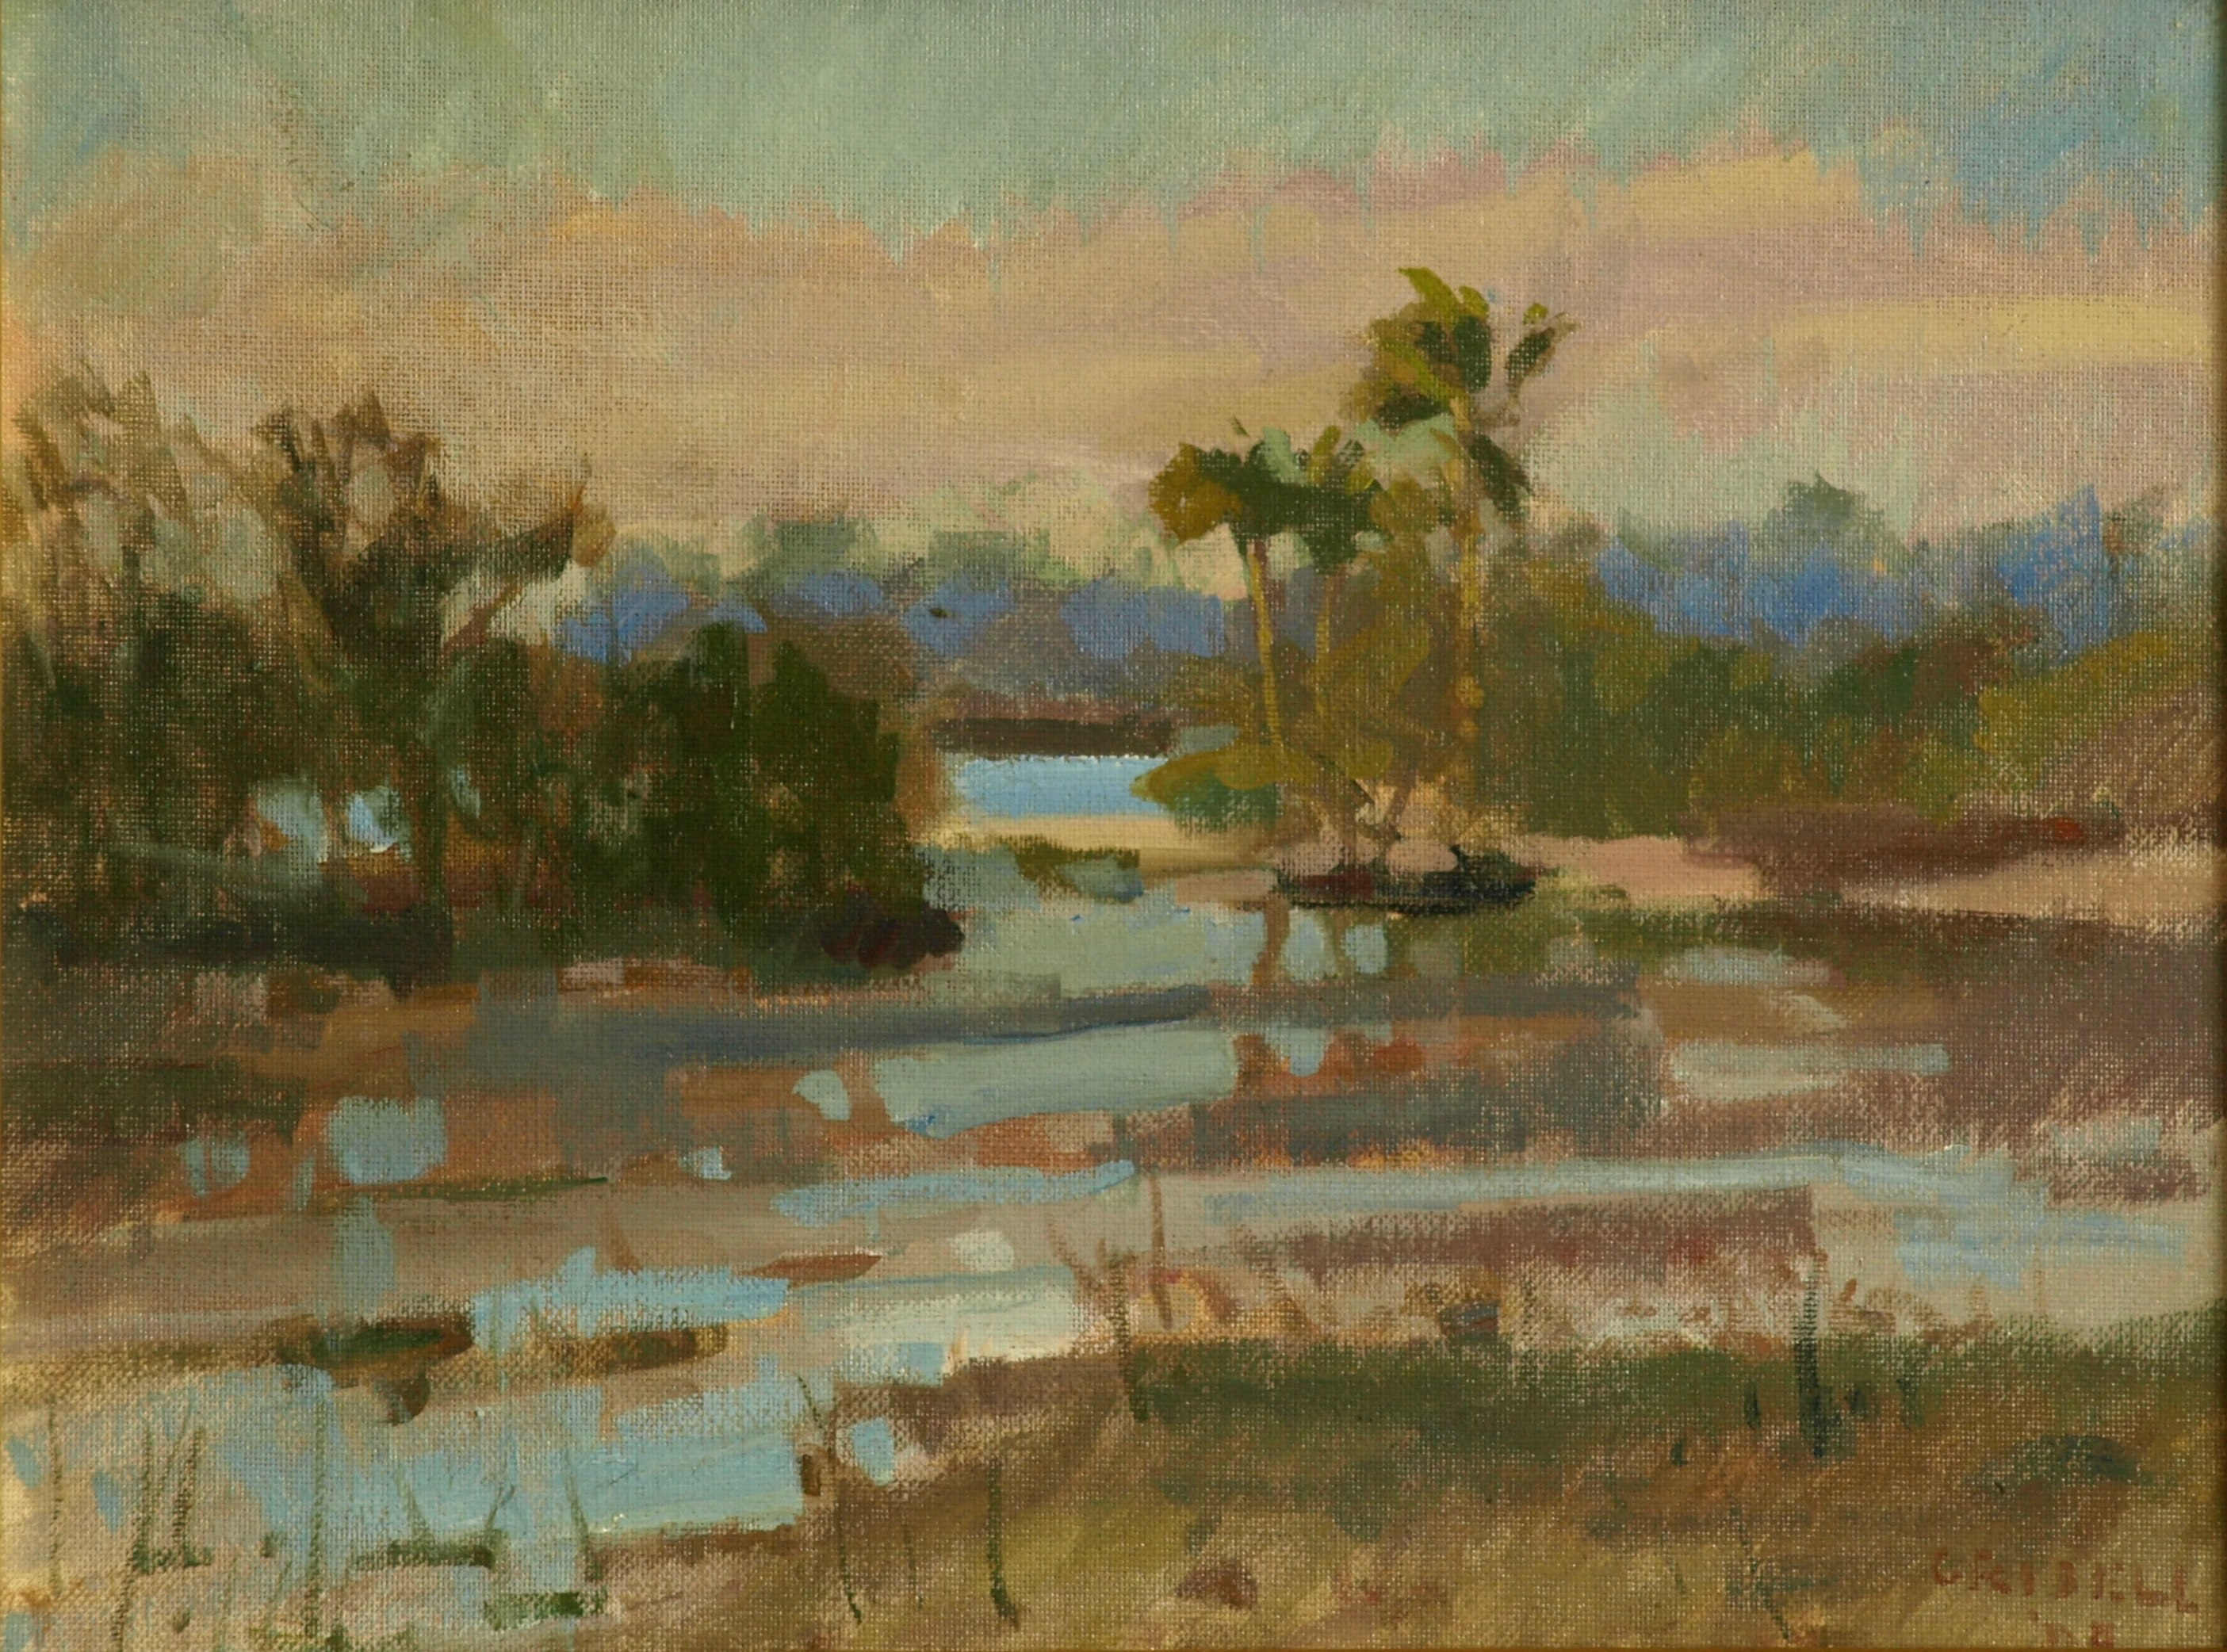 Florida Wetland, Oil on Canvas on Panel, 12 x 16 Inches, by Susan Grisell, $300